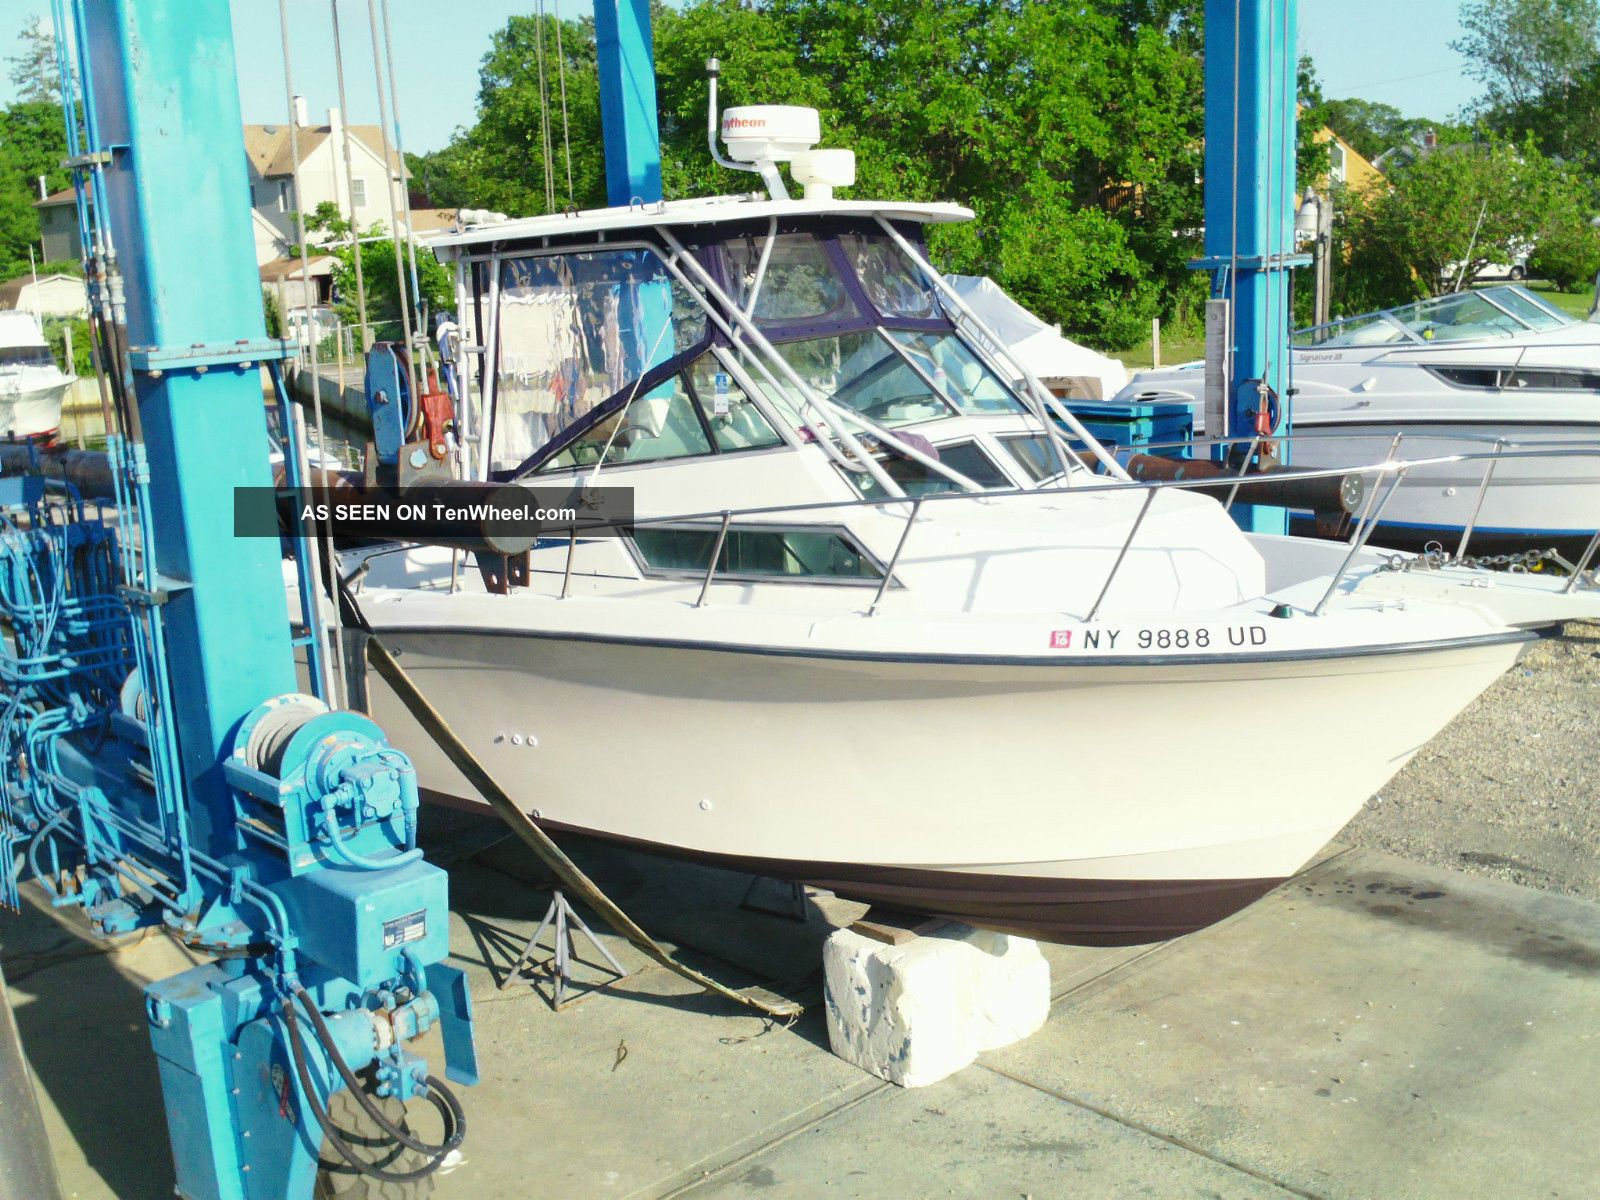 1990 Grady White Twinn 175 2007 Sail Fish 25 Sport Bridge Offshore Saltwater Fishing photo